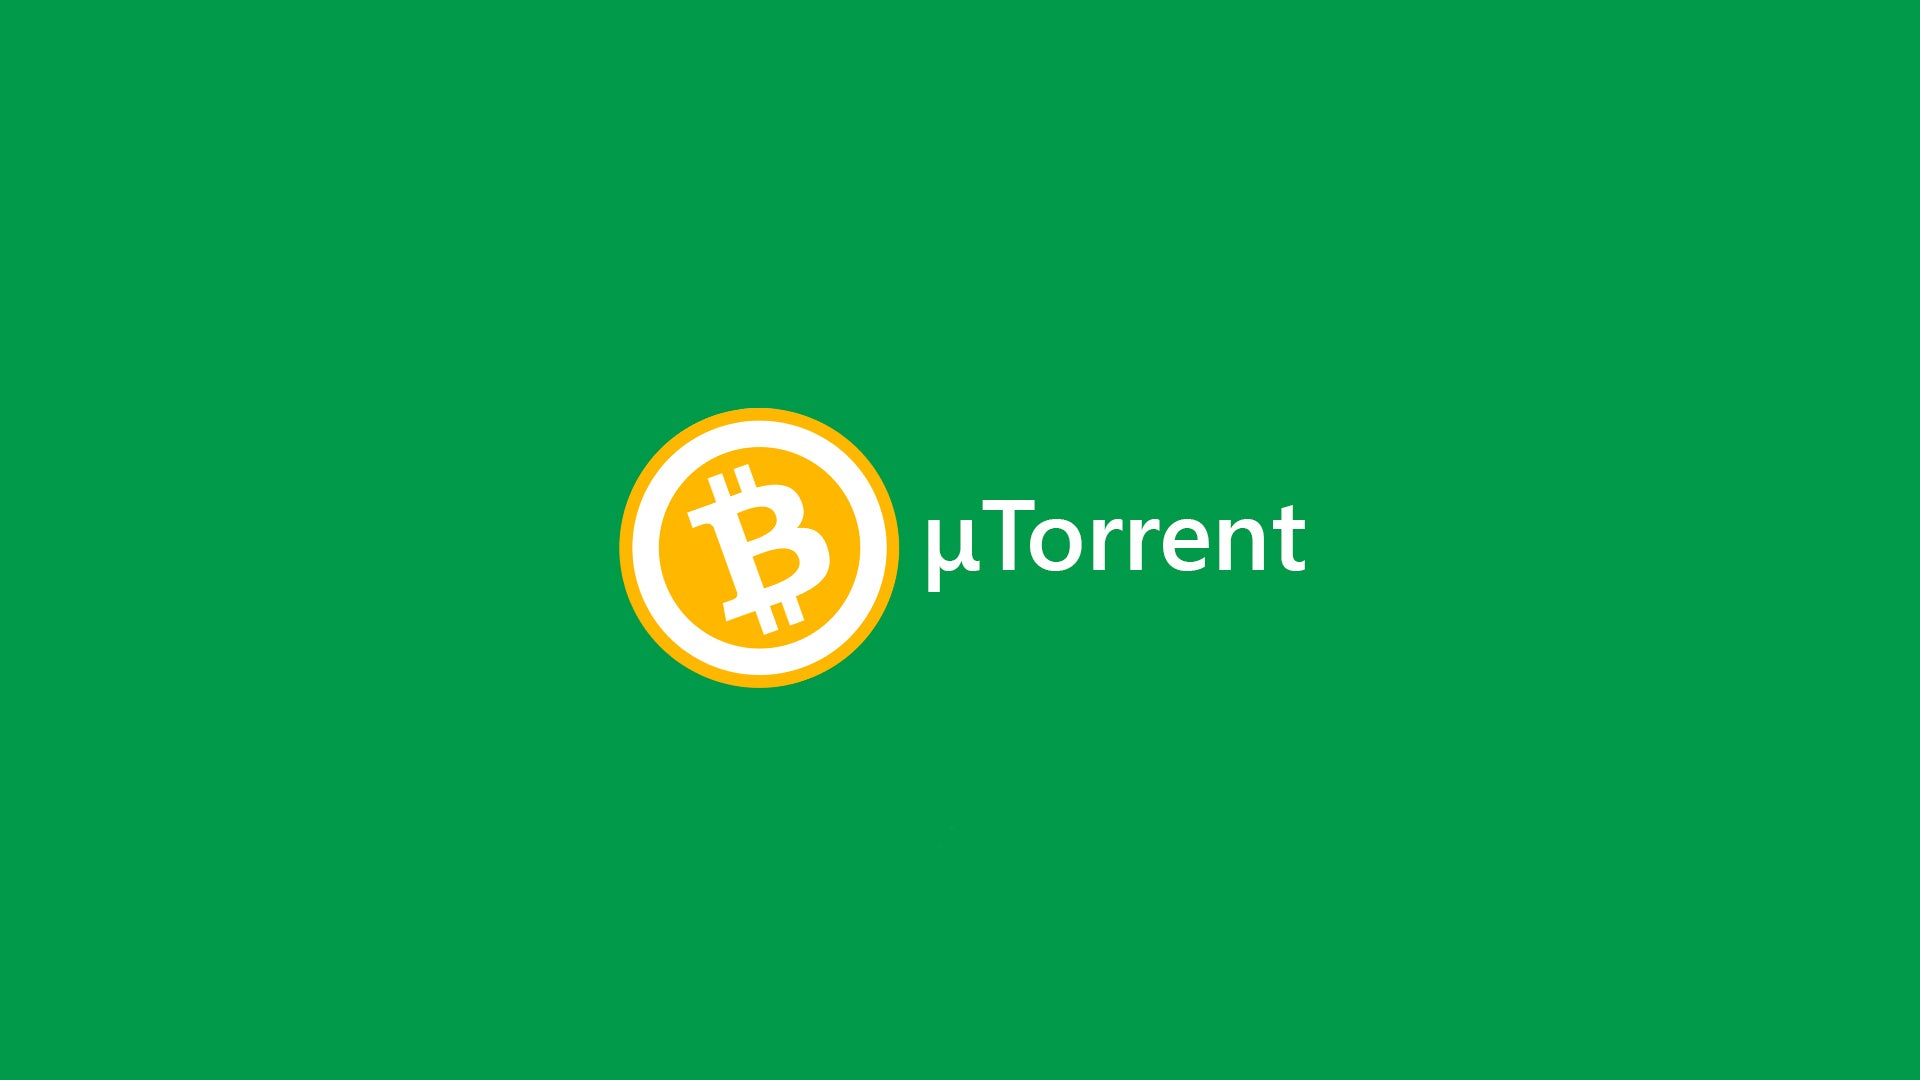 uTorrent Users: Here's How To Delete Bitcoin Miner EpicScale From Your PC